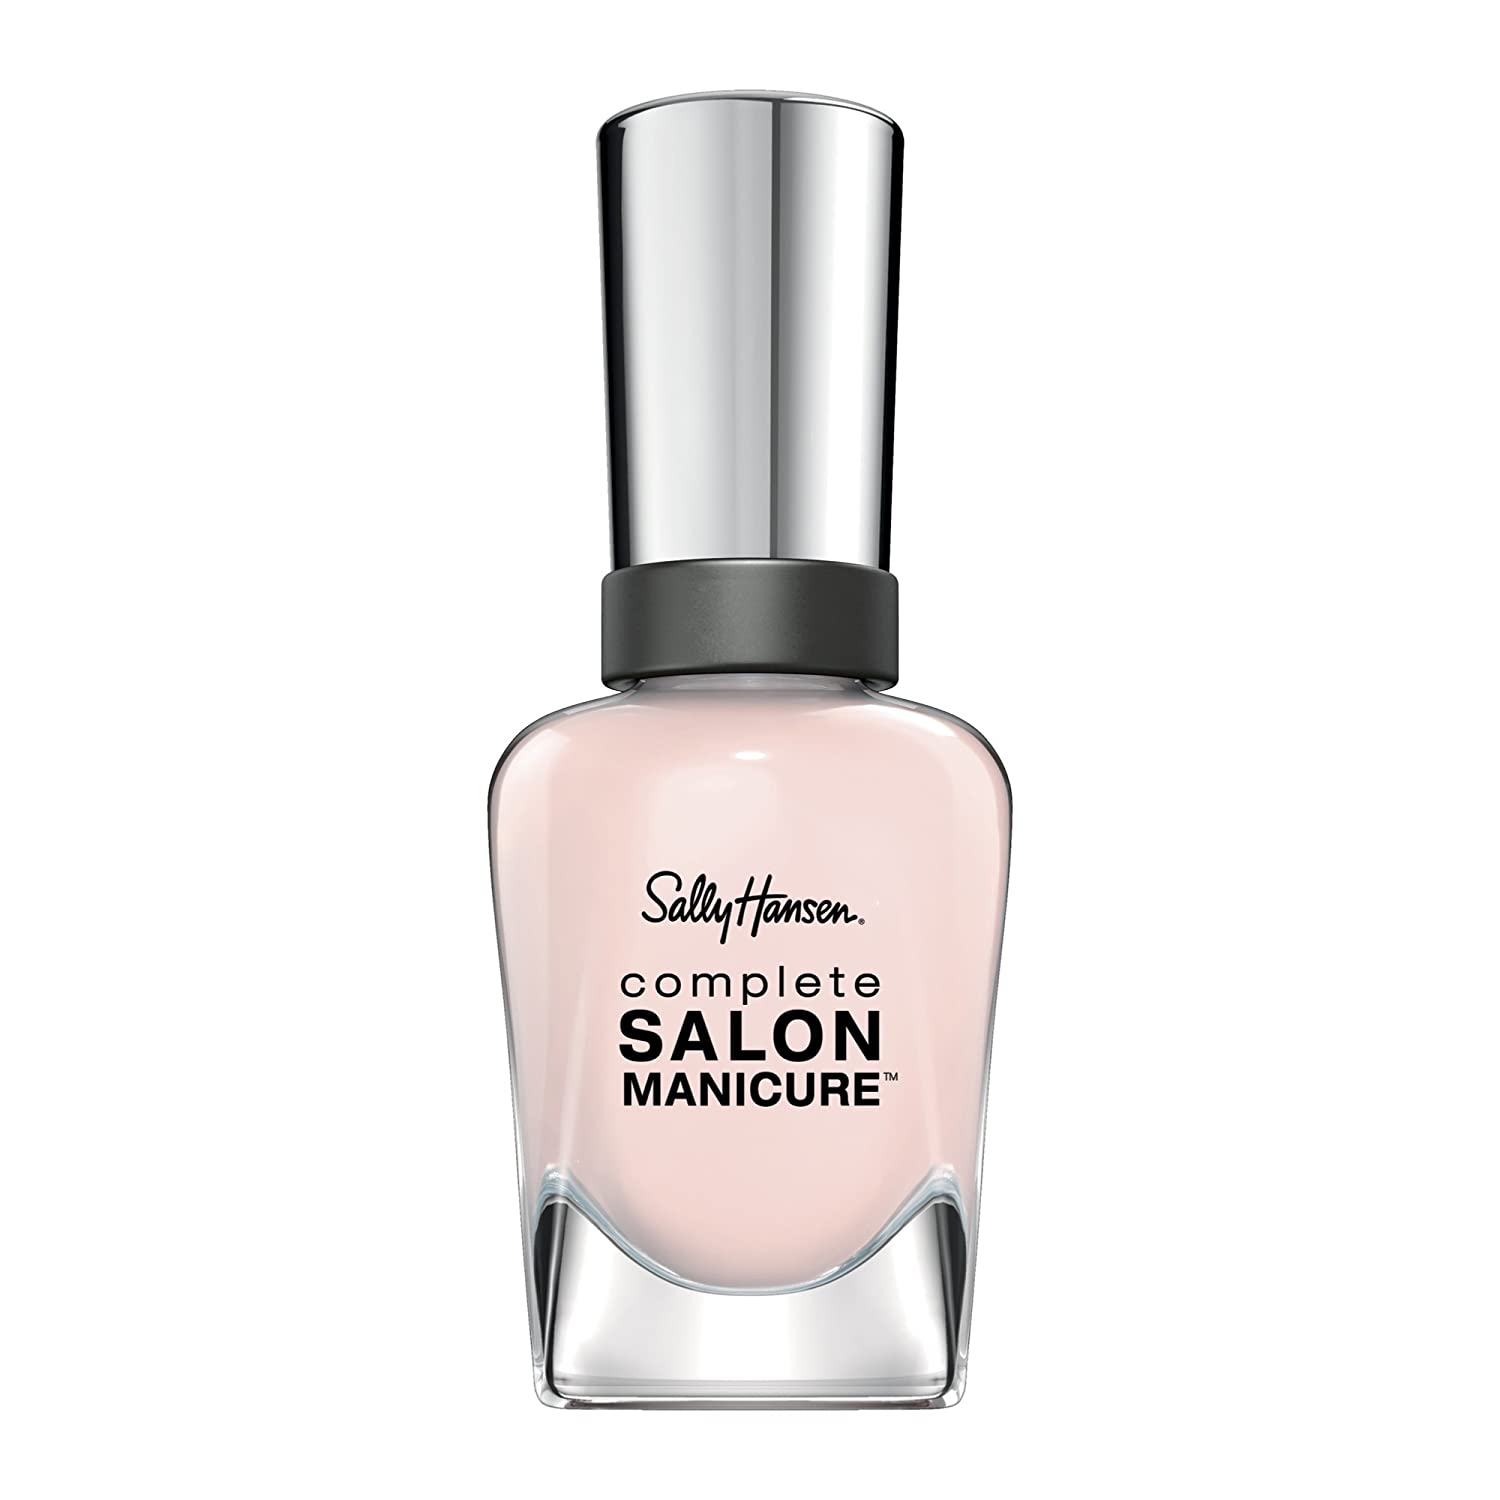 Sally Hansen Complete Salon Manicure Nail Polish, Sweet Talker, 0.5 Fluid Ounce